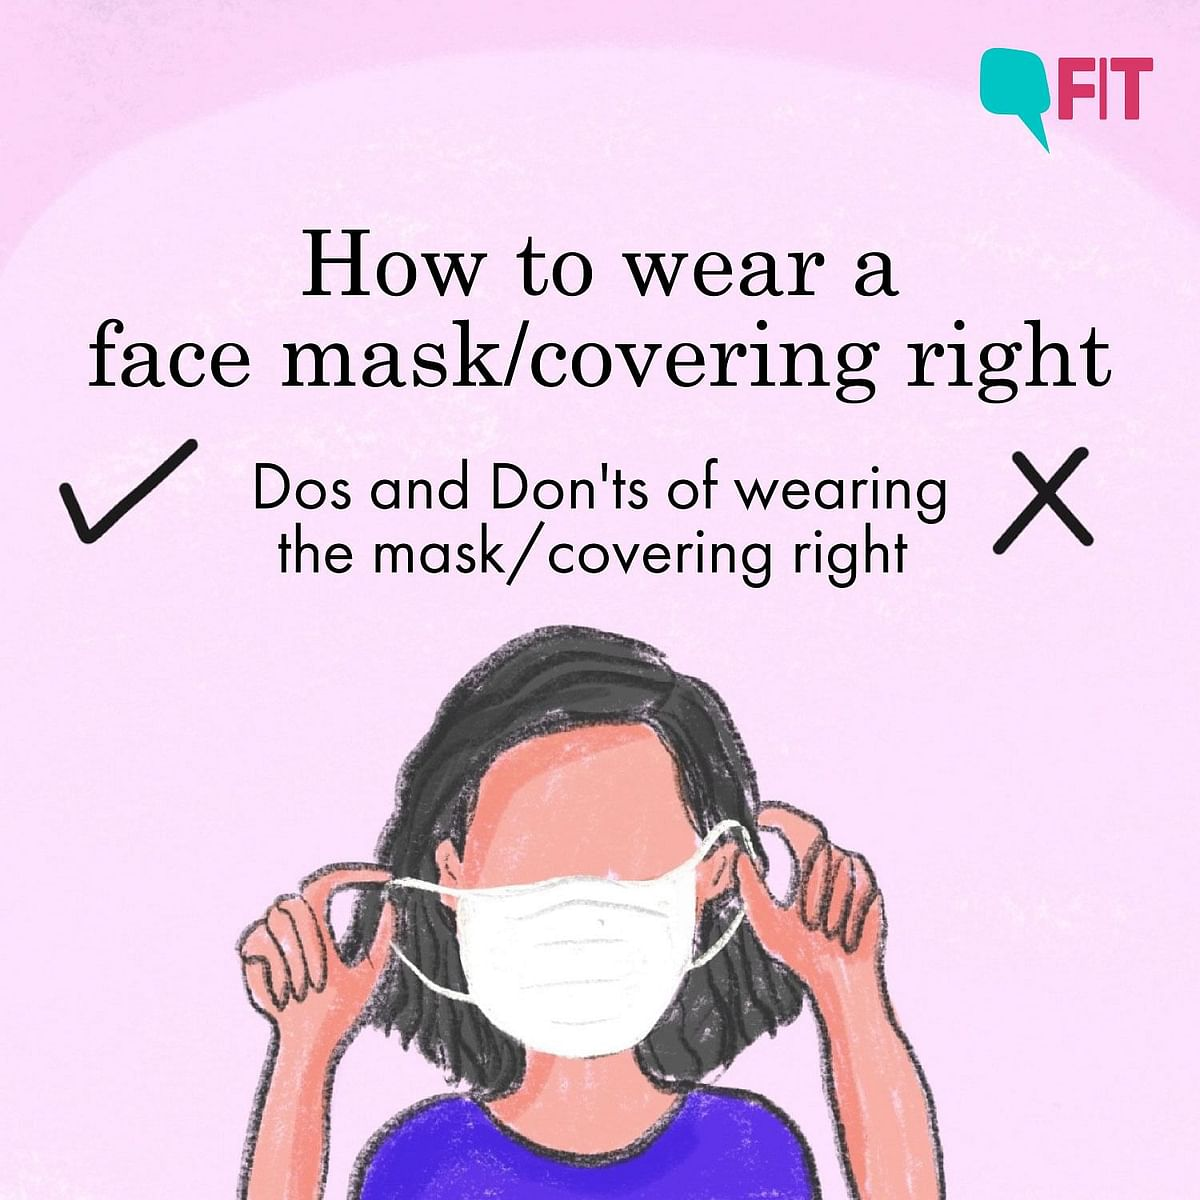 How to wear a face mask right.